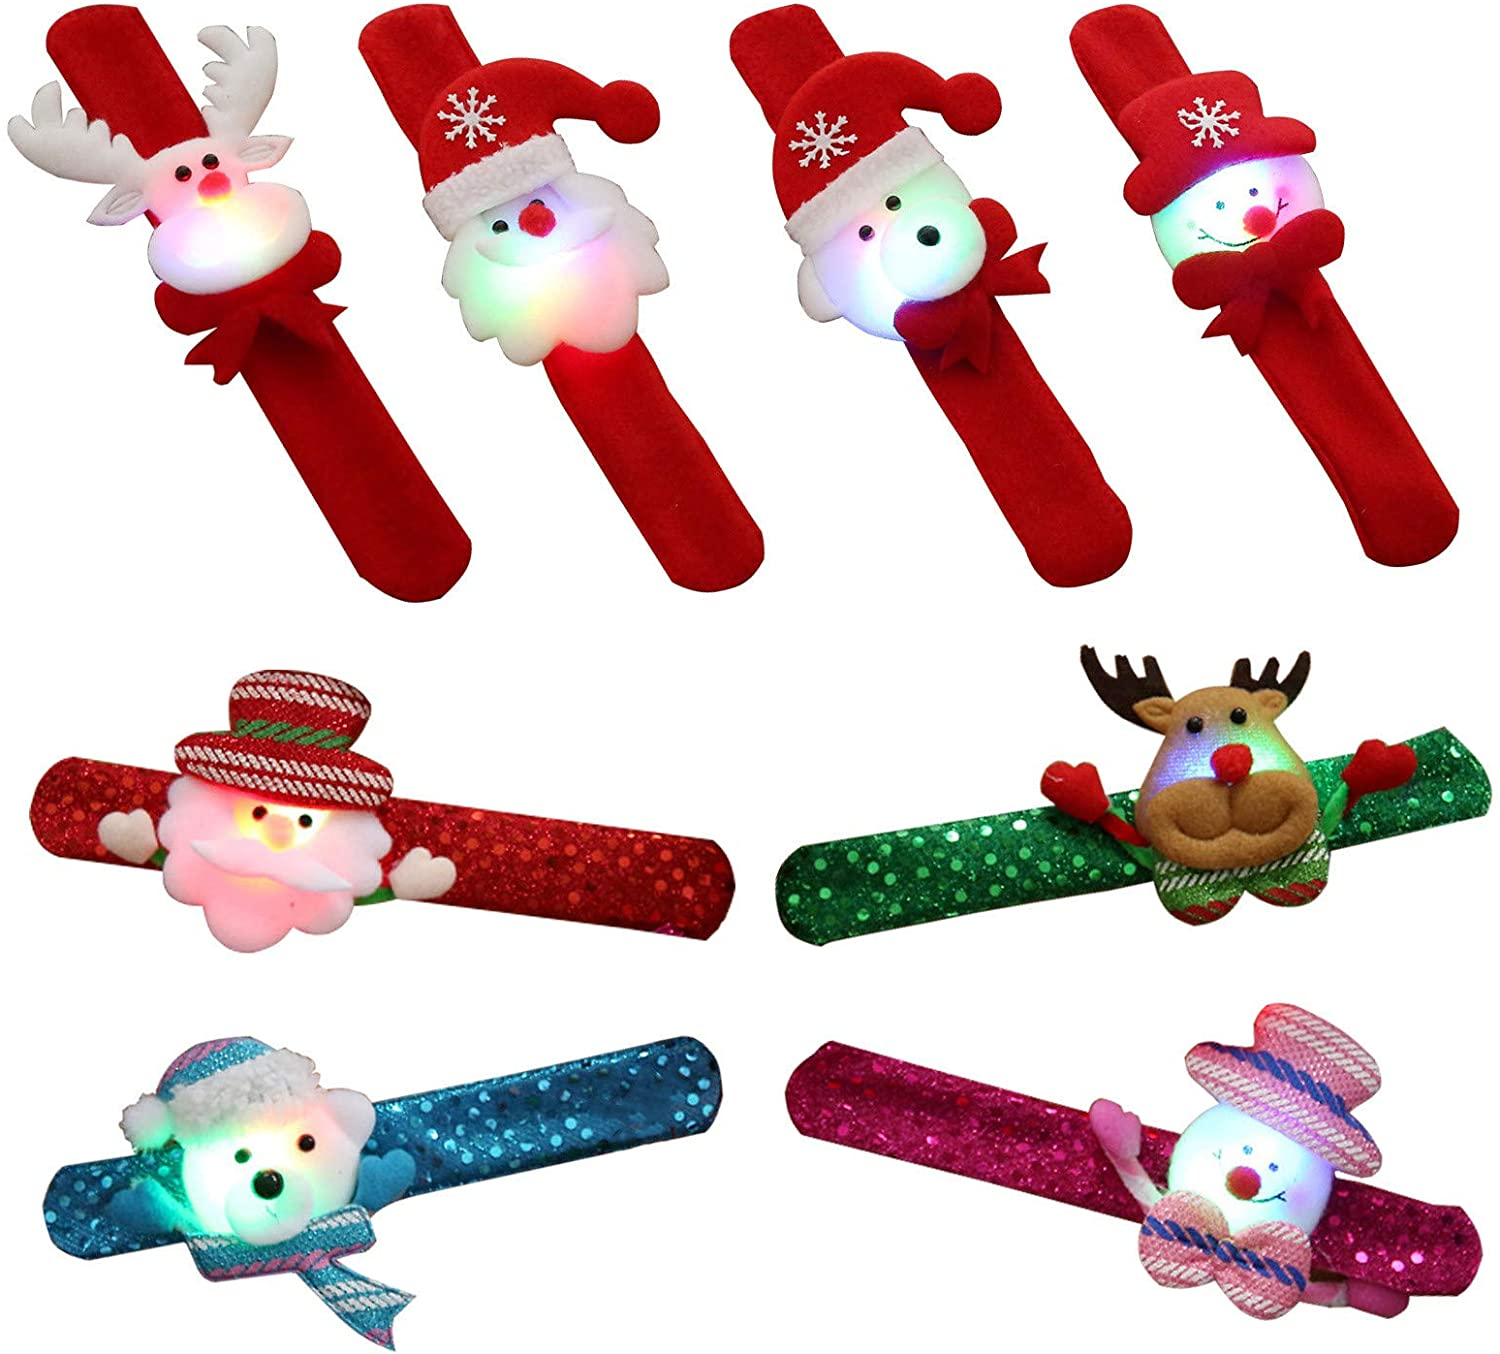 N/H 8PCS LED Christmas Slap Bracelets Wristband Glitter Santa Claus Snowman Bear Reindeer Christmas Circle Wrist Band Kids Boys Girls Adults Christmas Party Favors Ornament